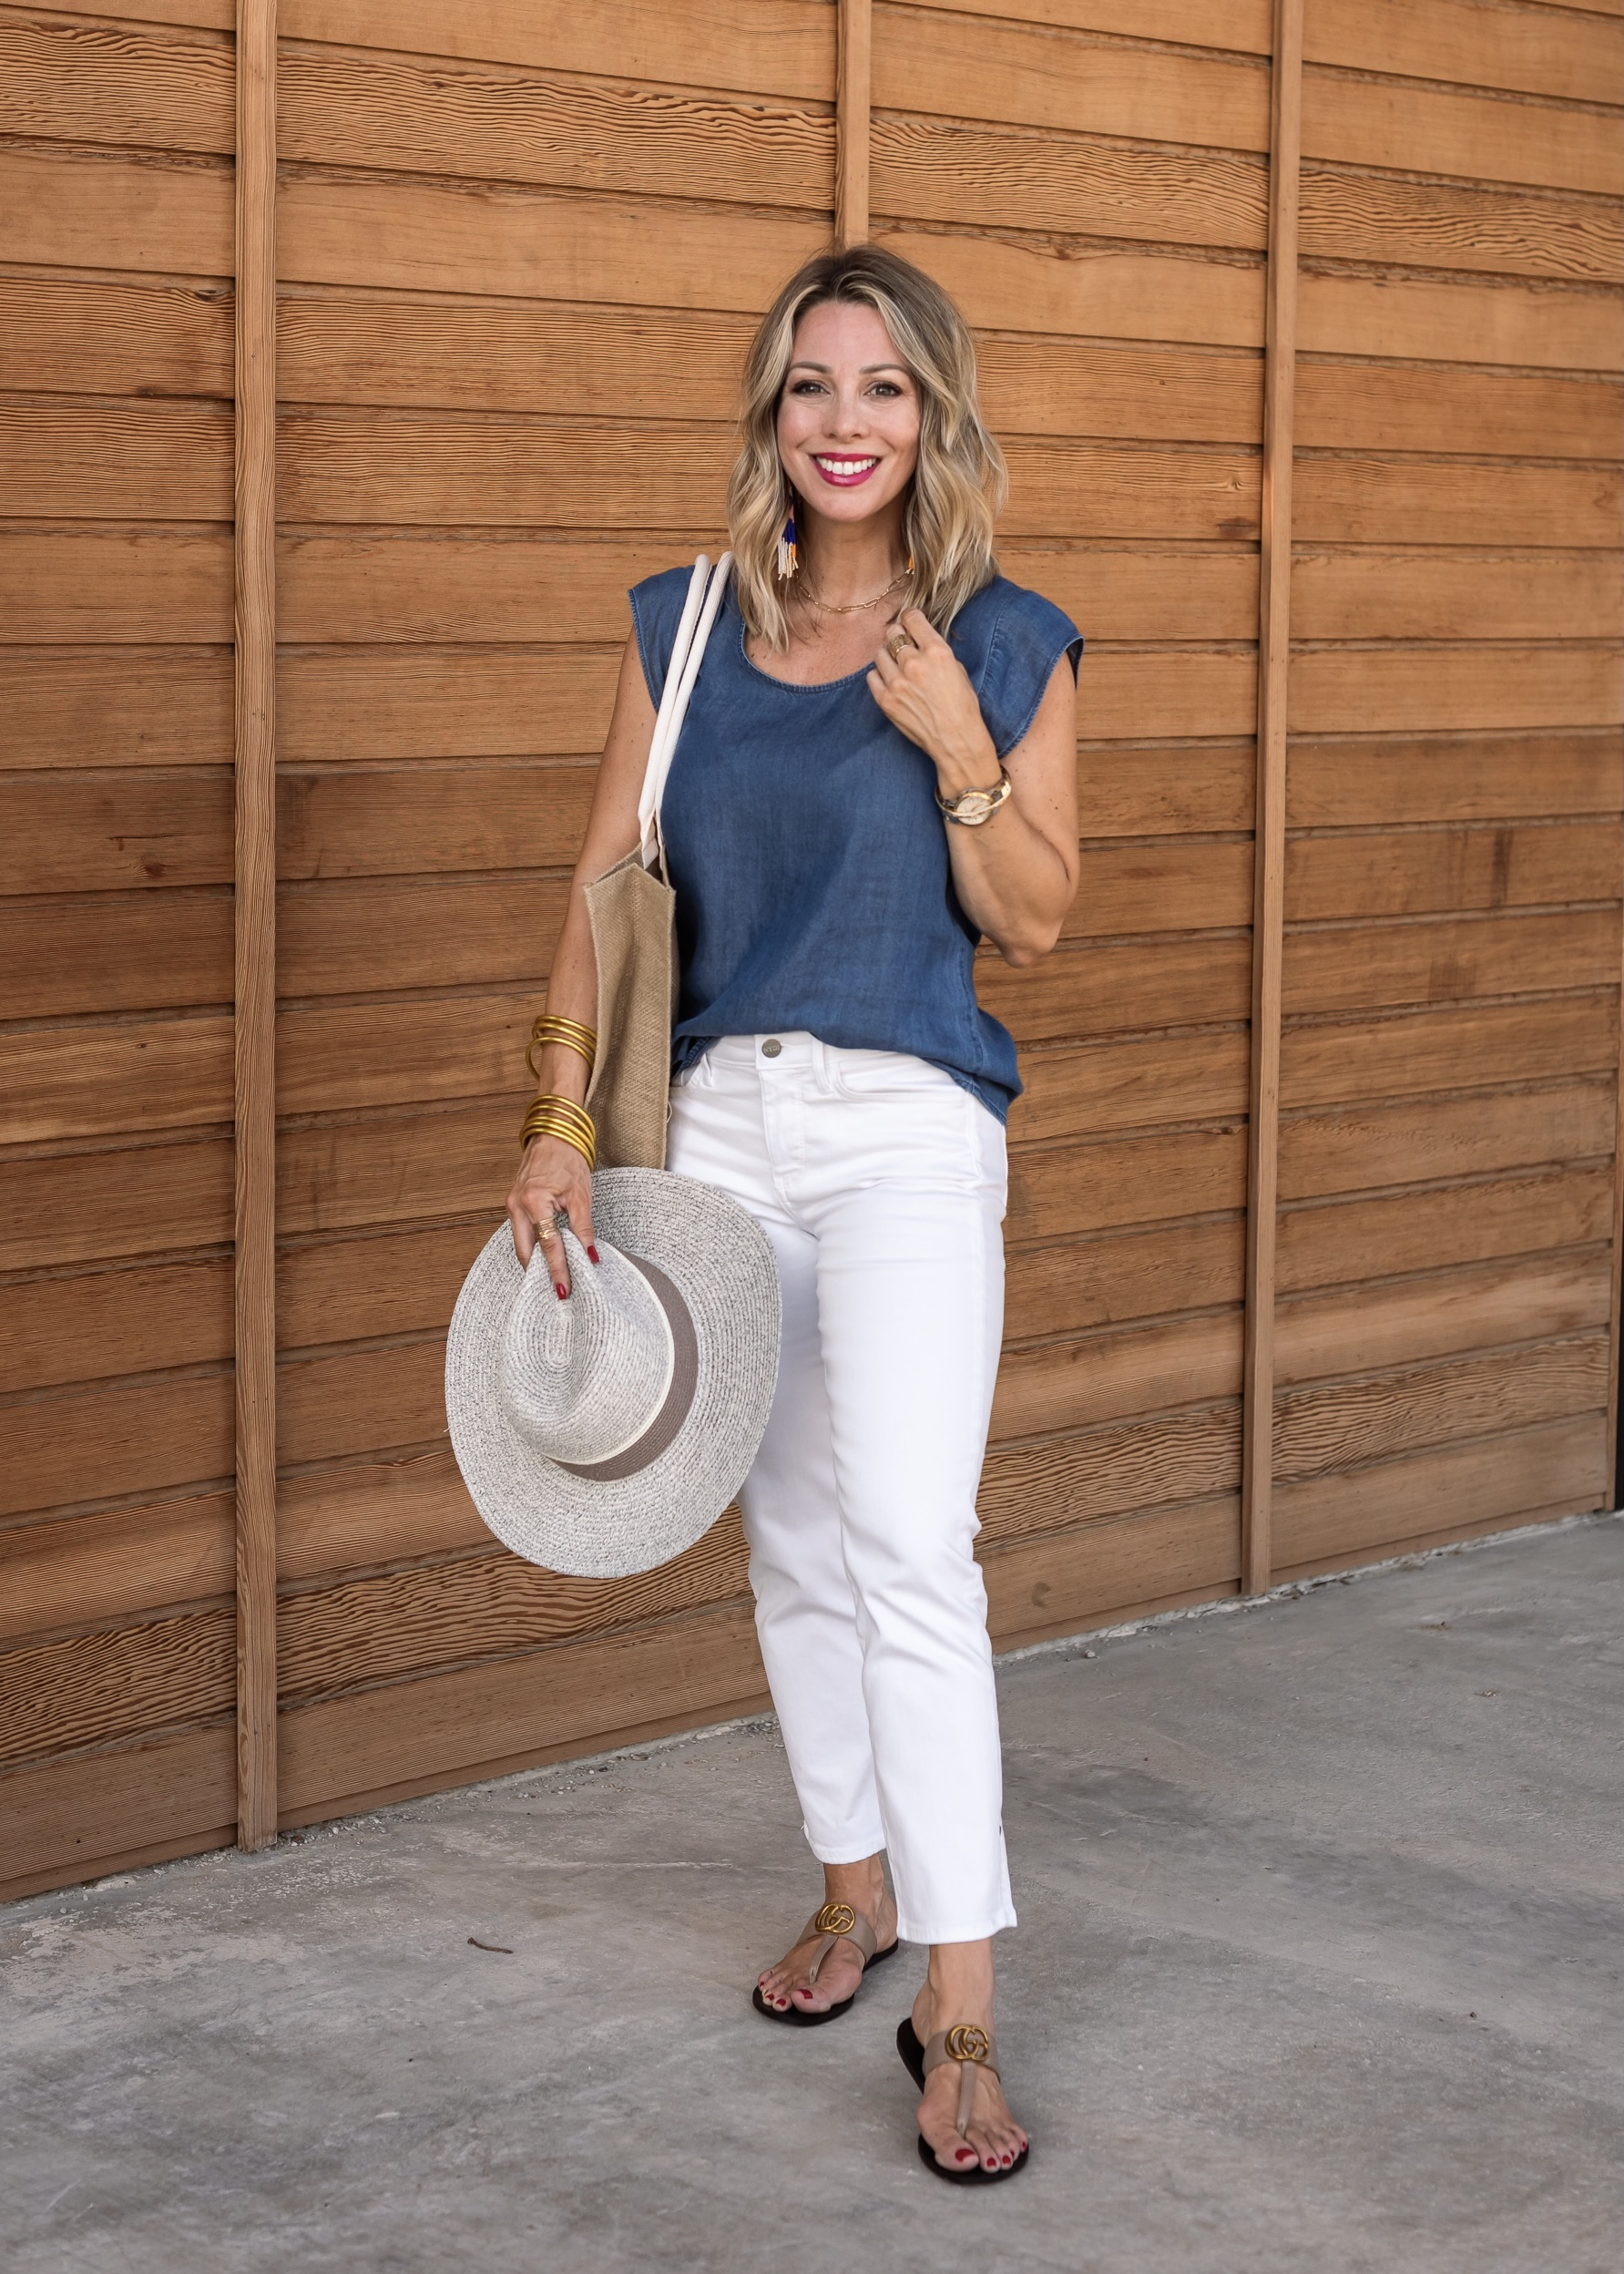 Blue Chambray Top and White Jeans with Sandals and Hat